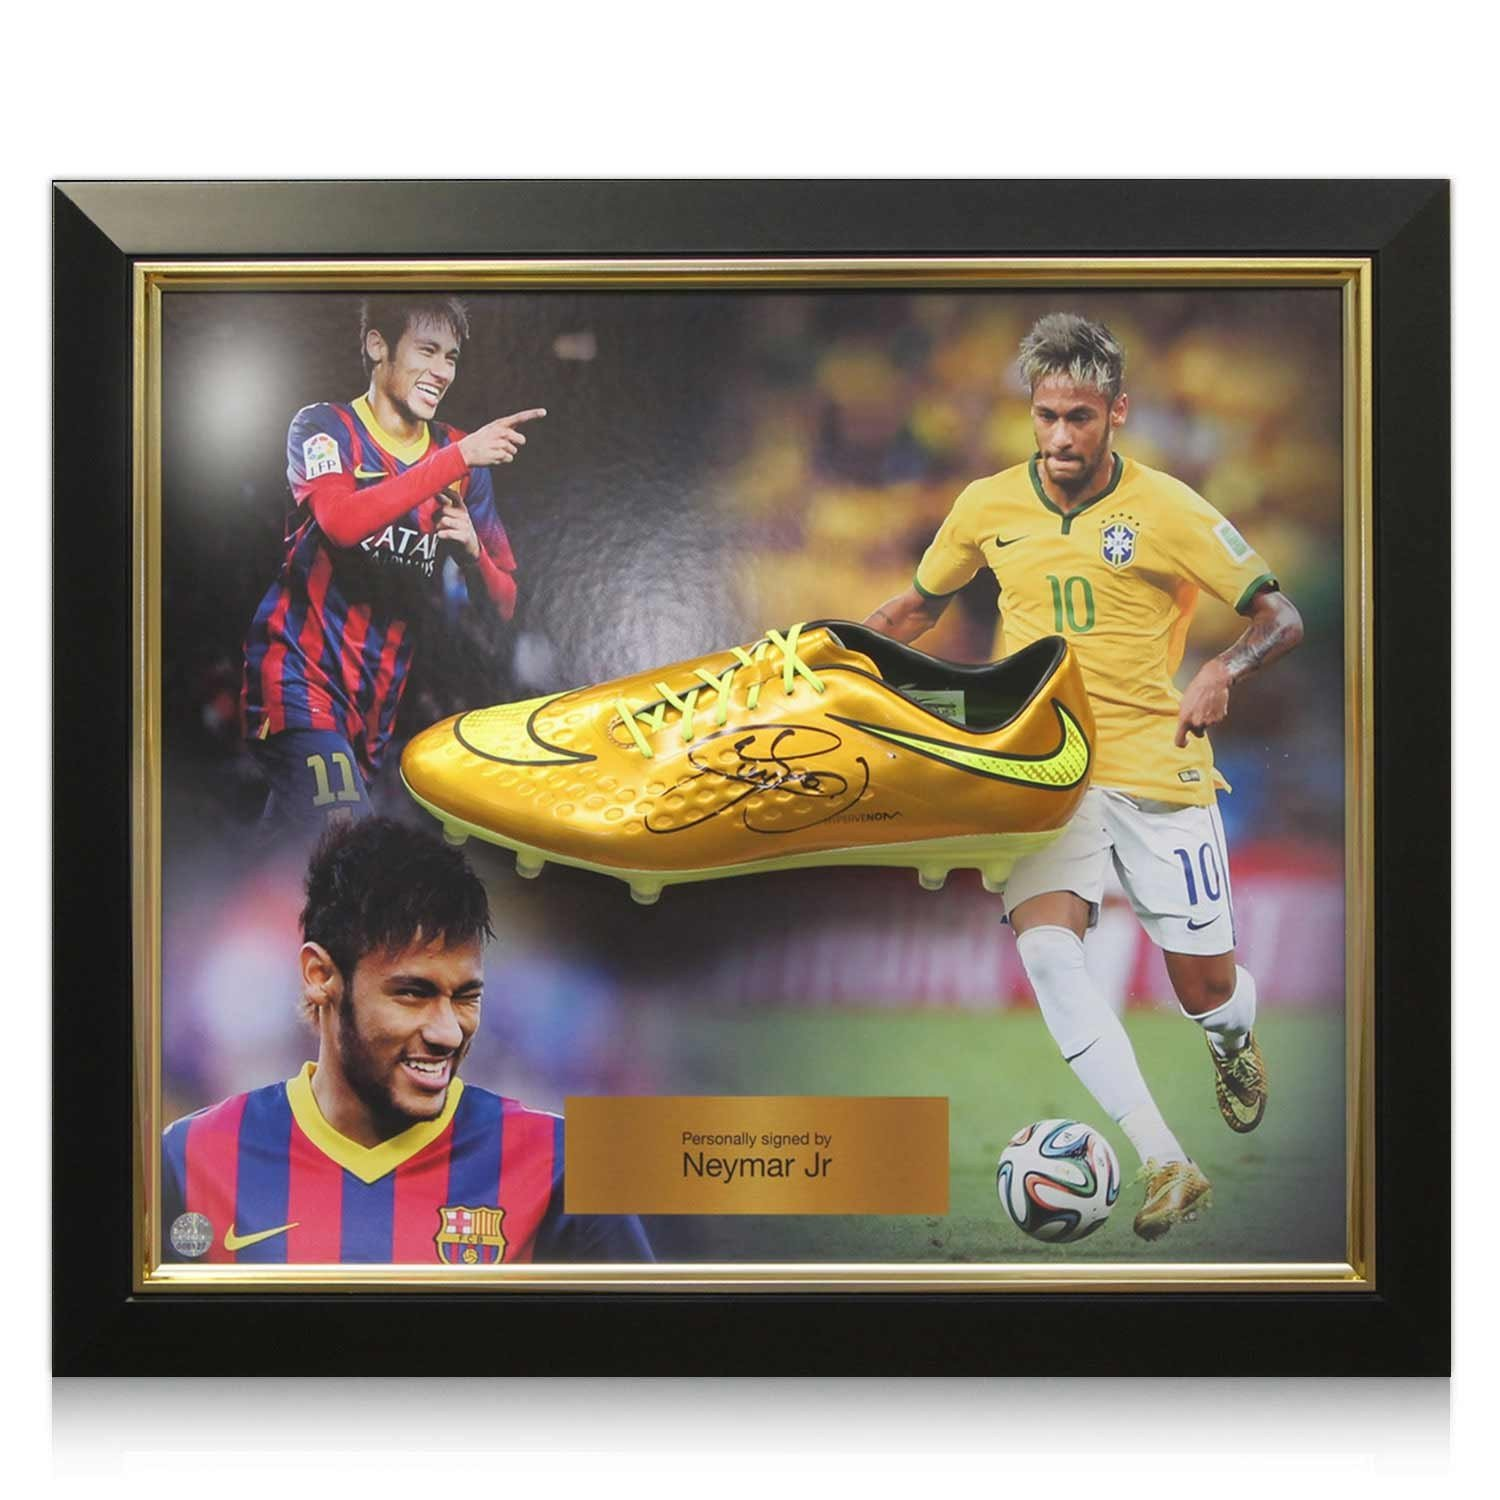 Deluxe Framed Neymar Jr Signed Nike Hypervenom Gold Soccer Shoe at Amazons Sports Collectibles Store